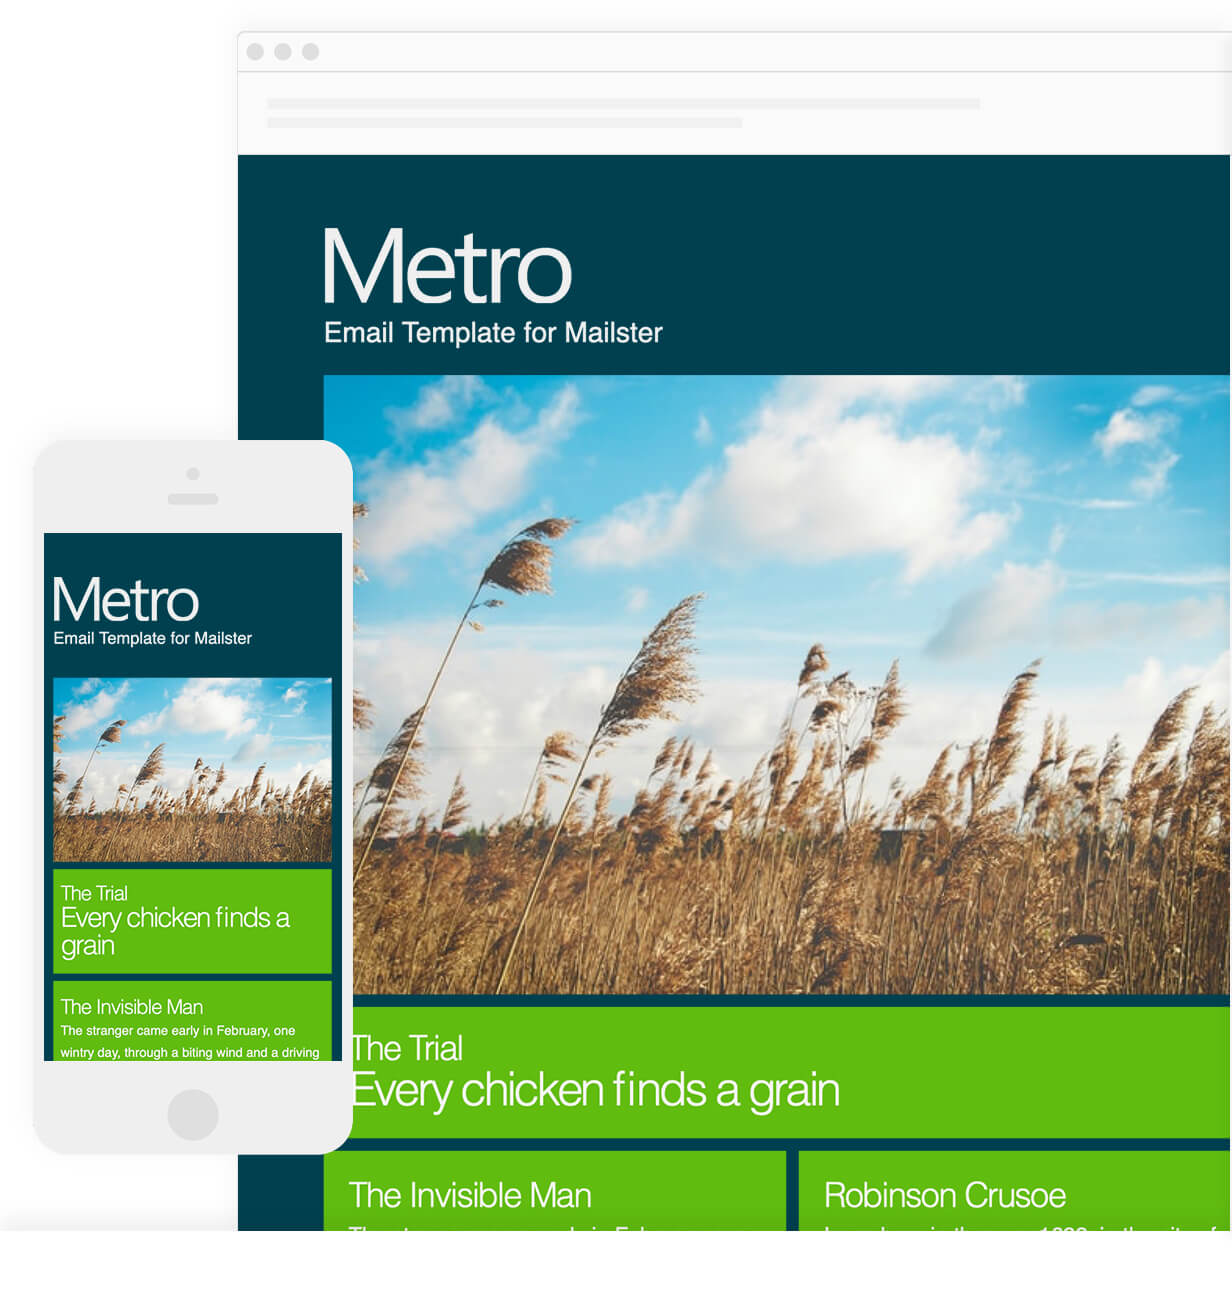 Metro - Email Template for Mailster - 6